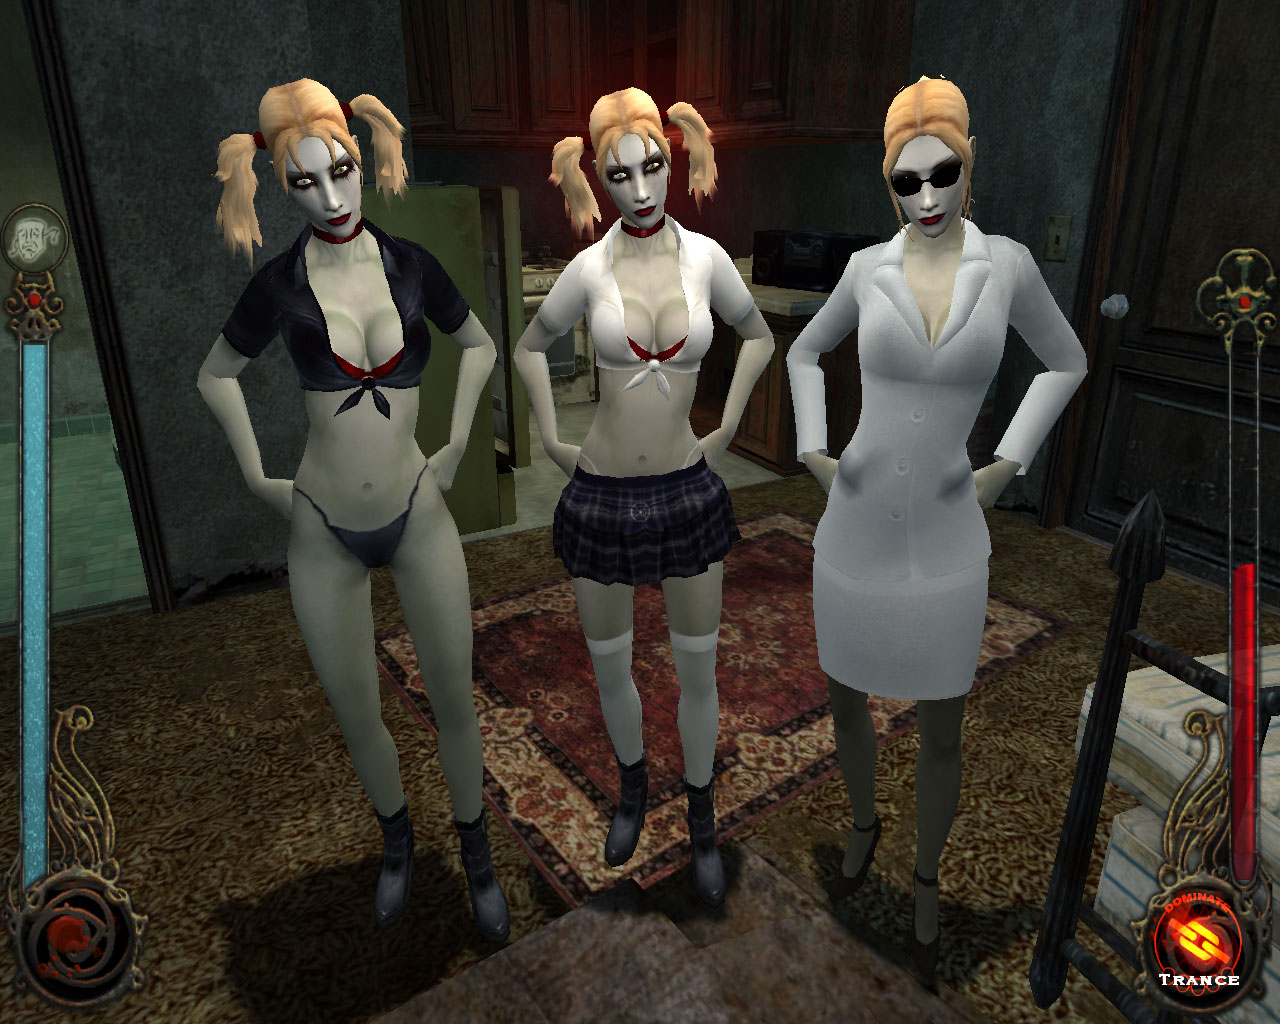 Vampire the masquerade sex mod nsfw sexi boobs